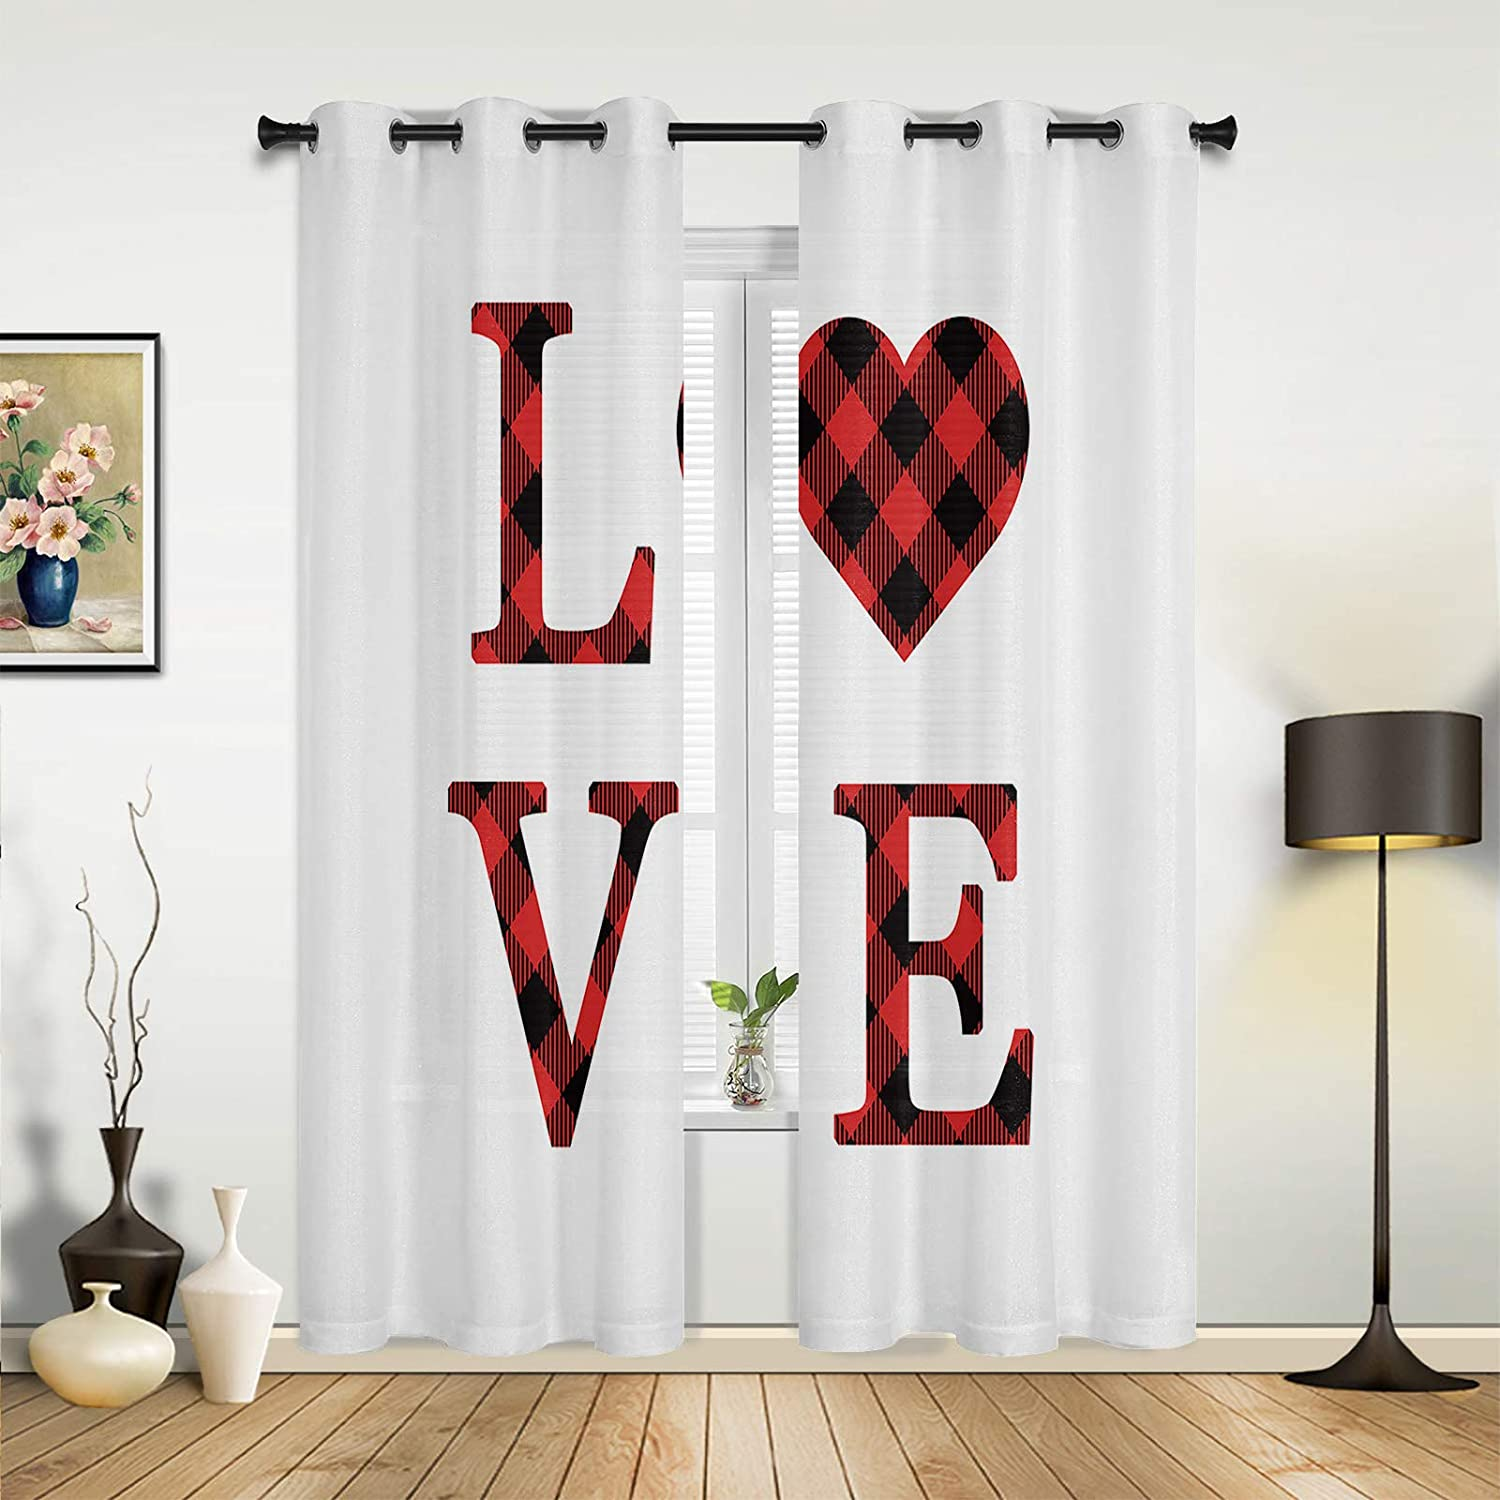 Beauty Decor Window Large-scale sale Sheer Curtains Happy Ranking TOP6 Room for Bedroom Living